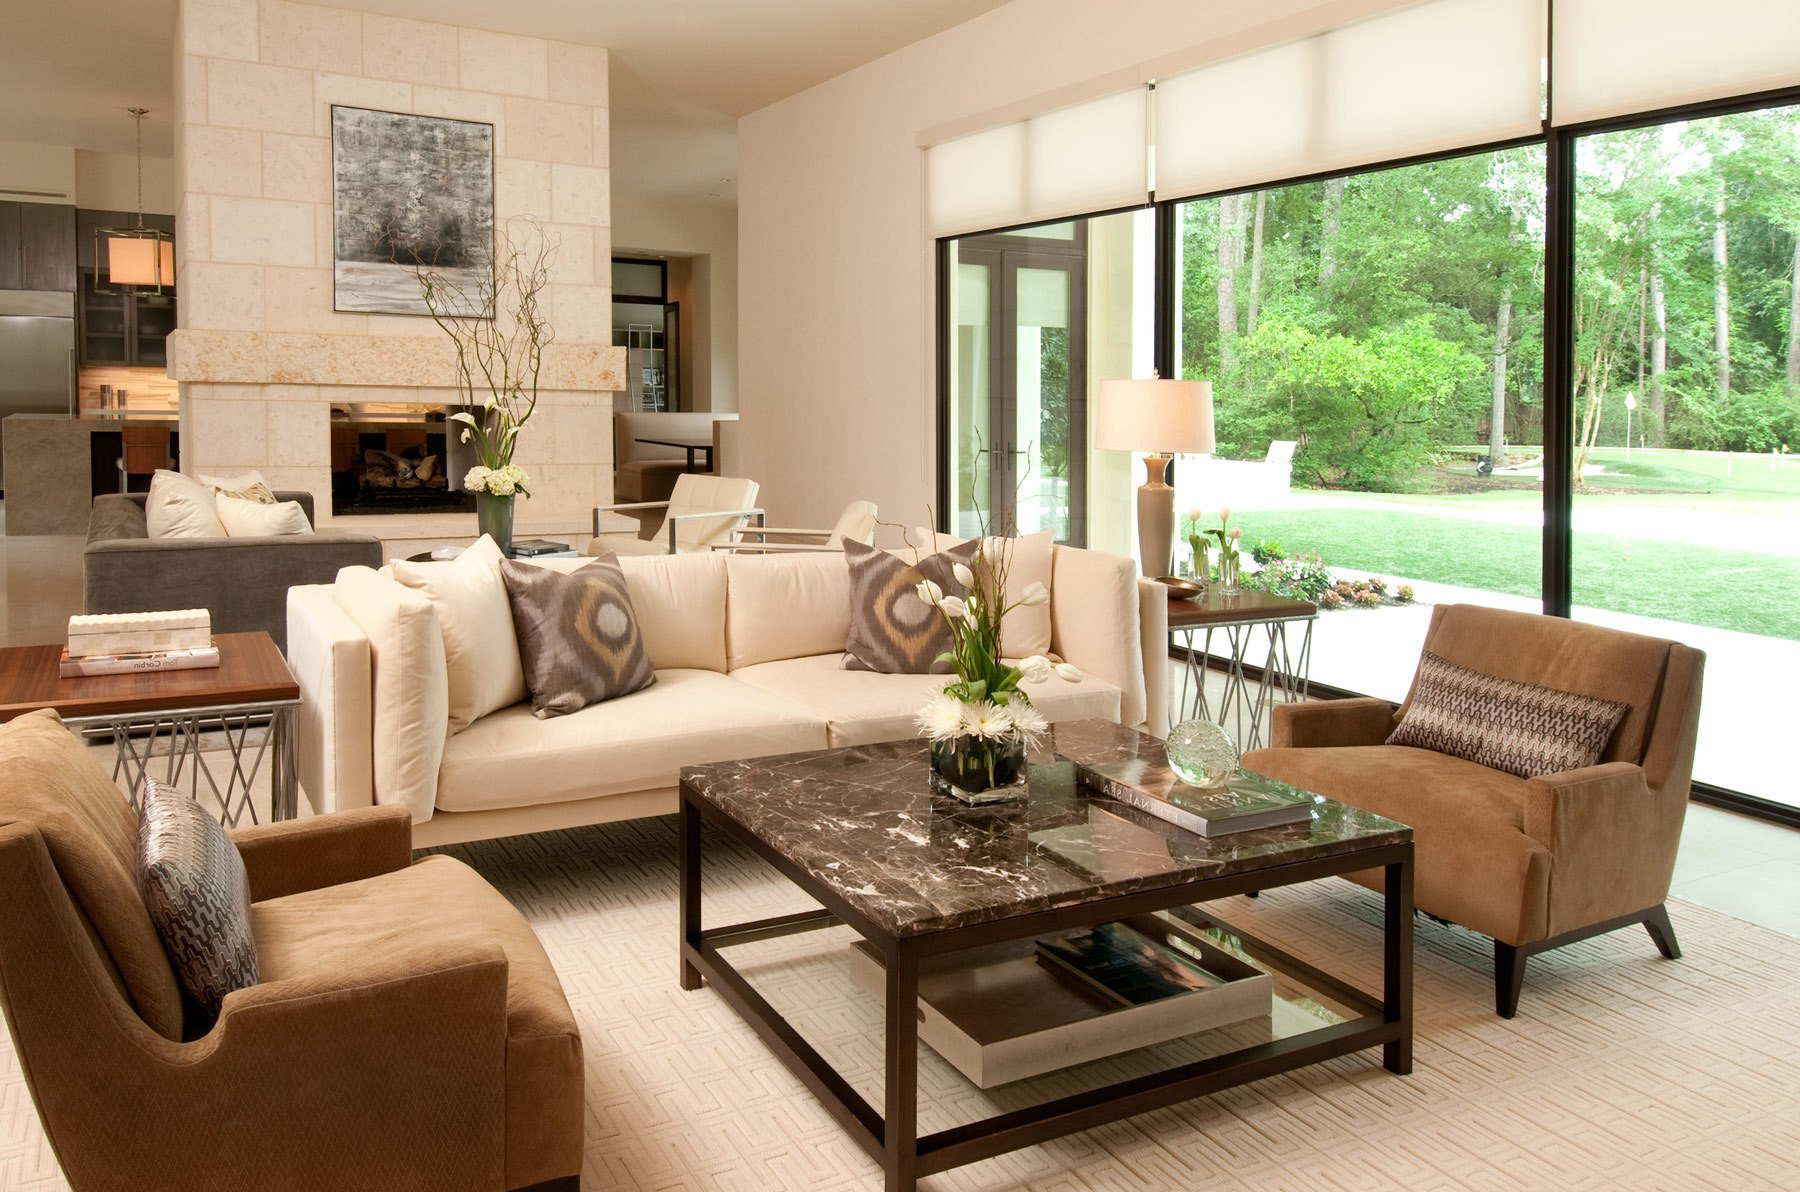 Cozy Comfortable Living Room Cozy and fortable American Living Room Interior 8001